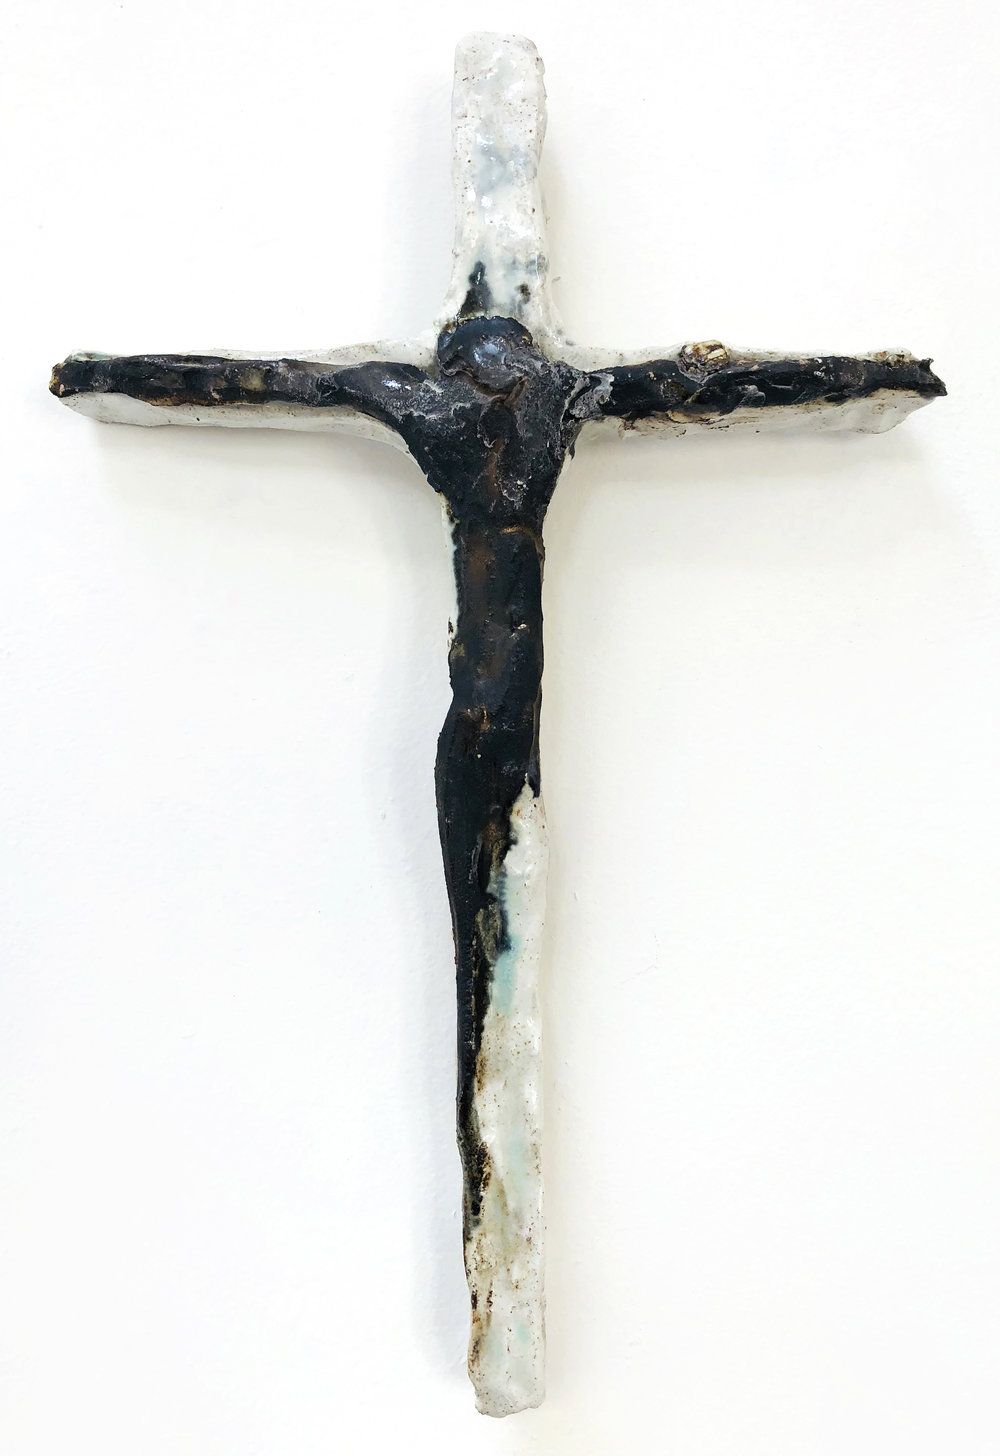 24-240x180-$1500-RichardLewer-Crucifix.jpg